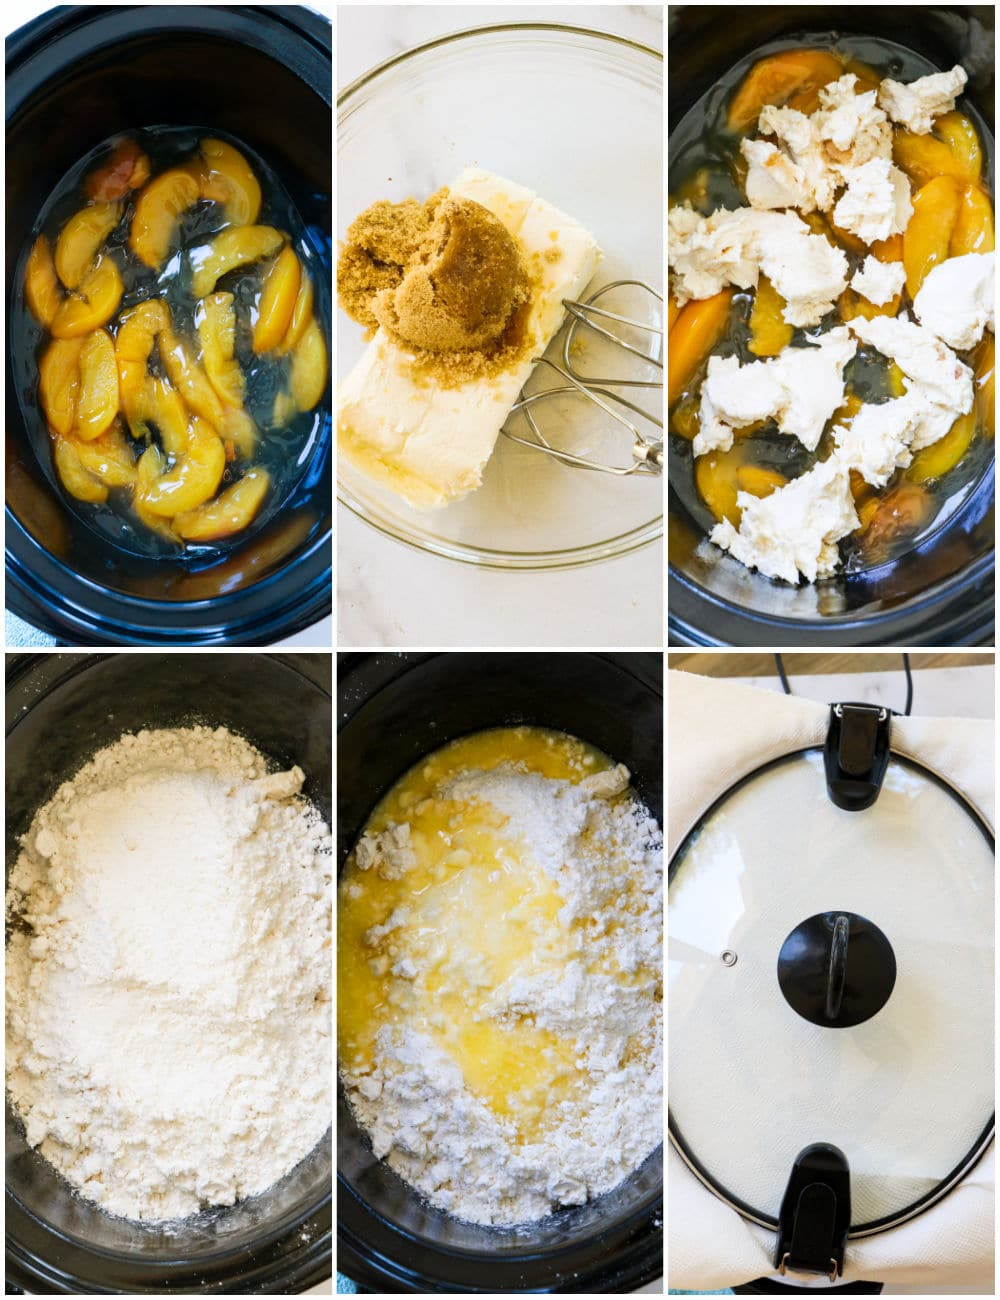 Collage showing steps of recipe.